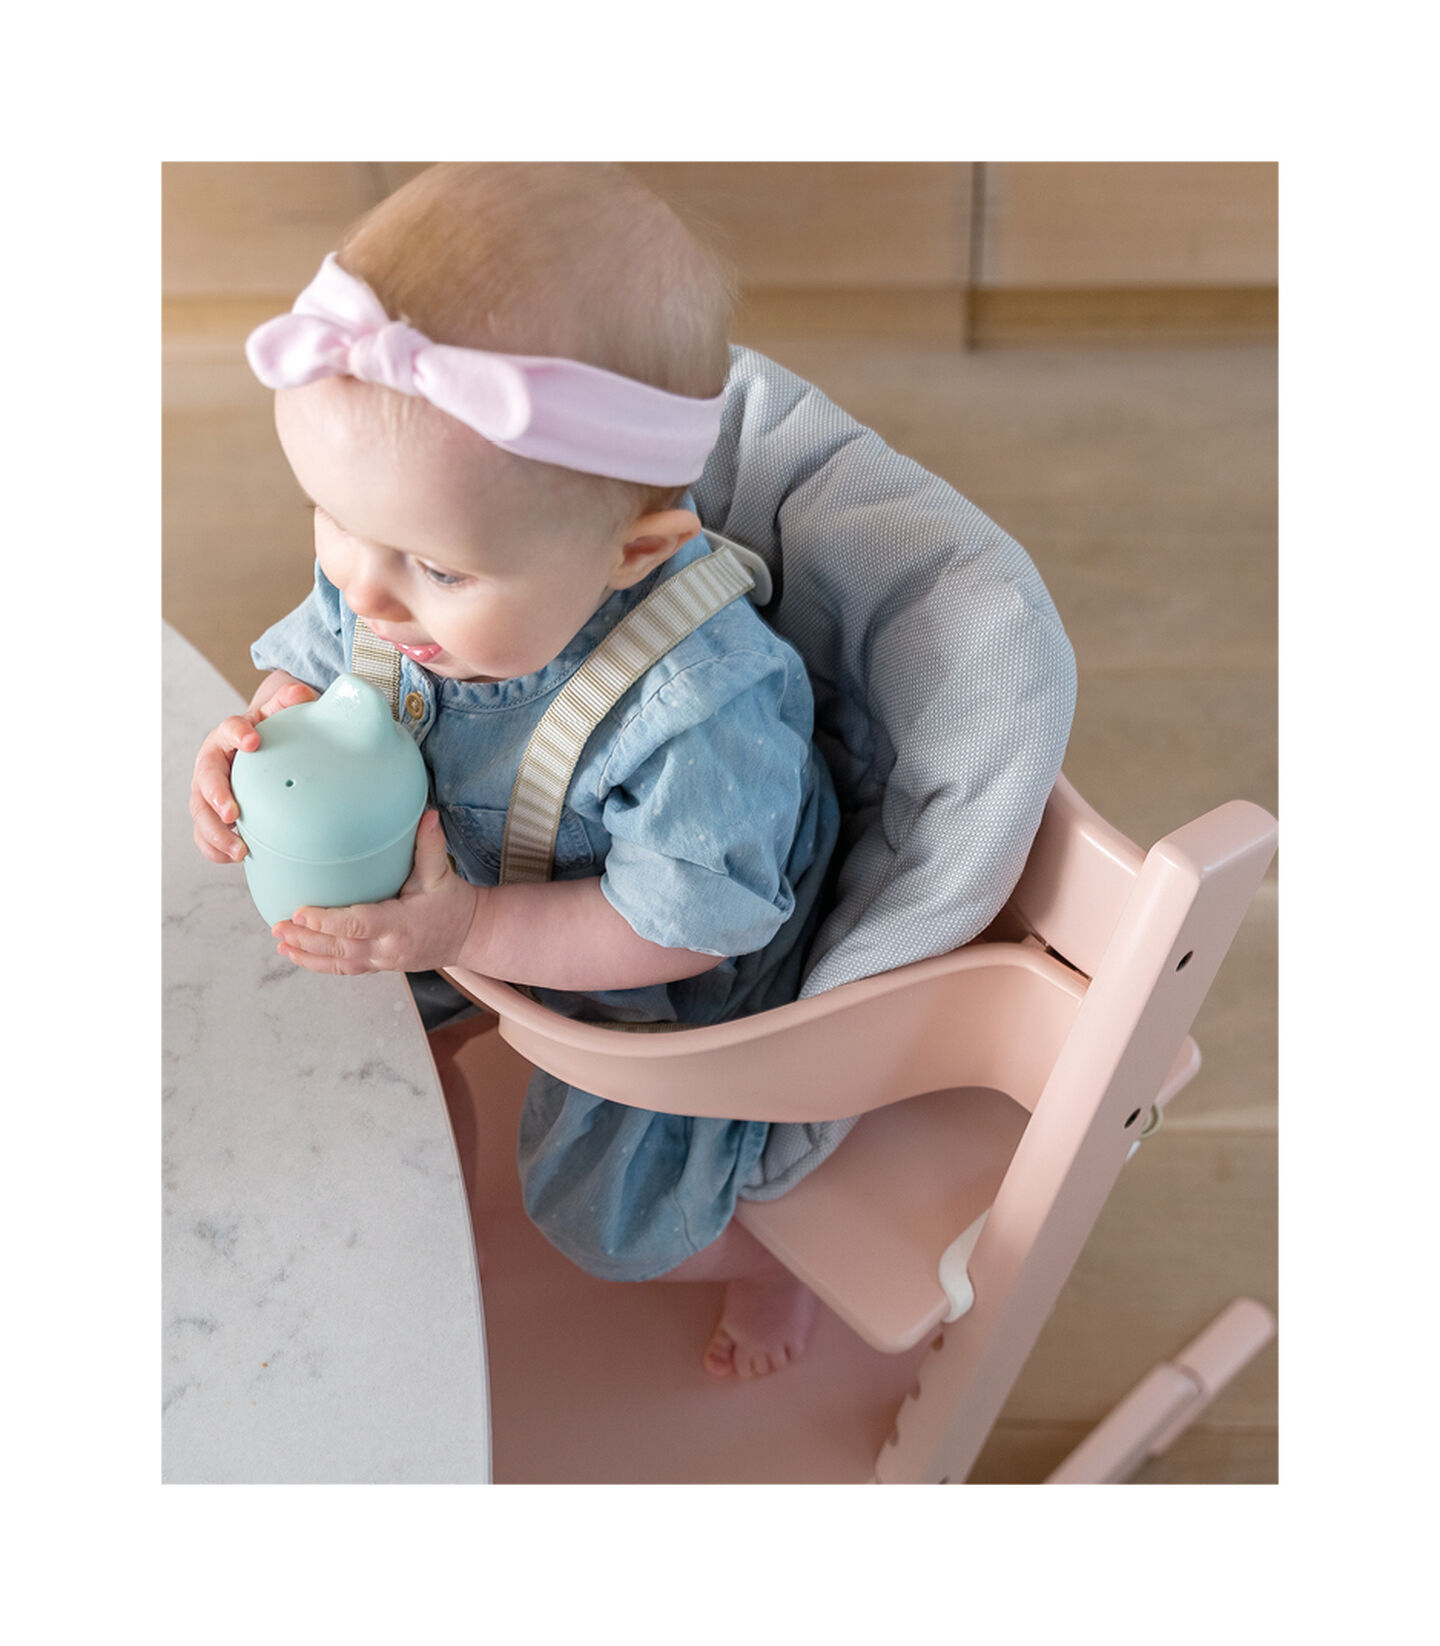 Tripp Trapp® Serene Pink, Beech wood. With Tripp Trapp® Baby Set. view 2